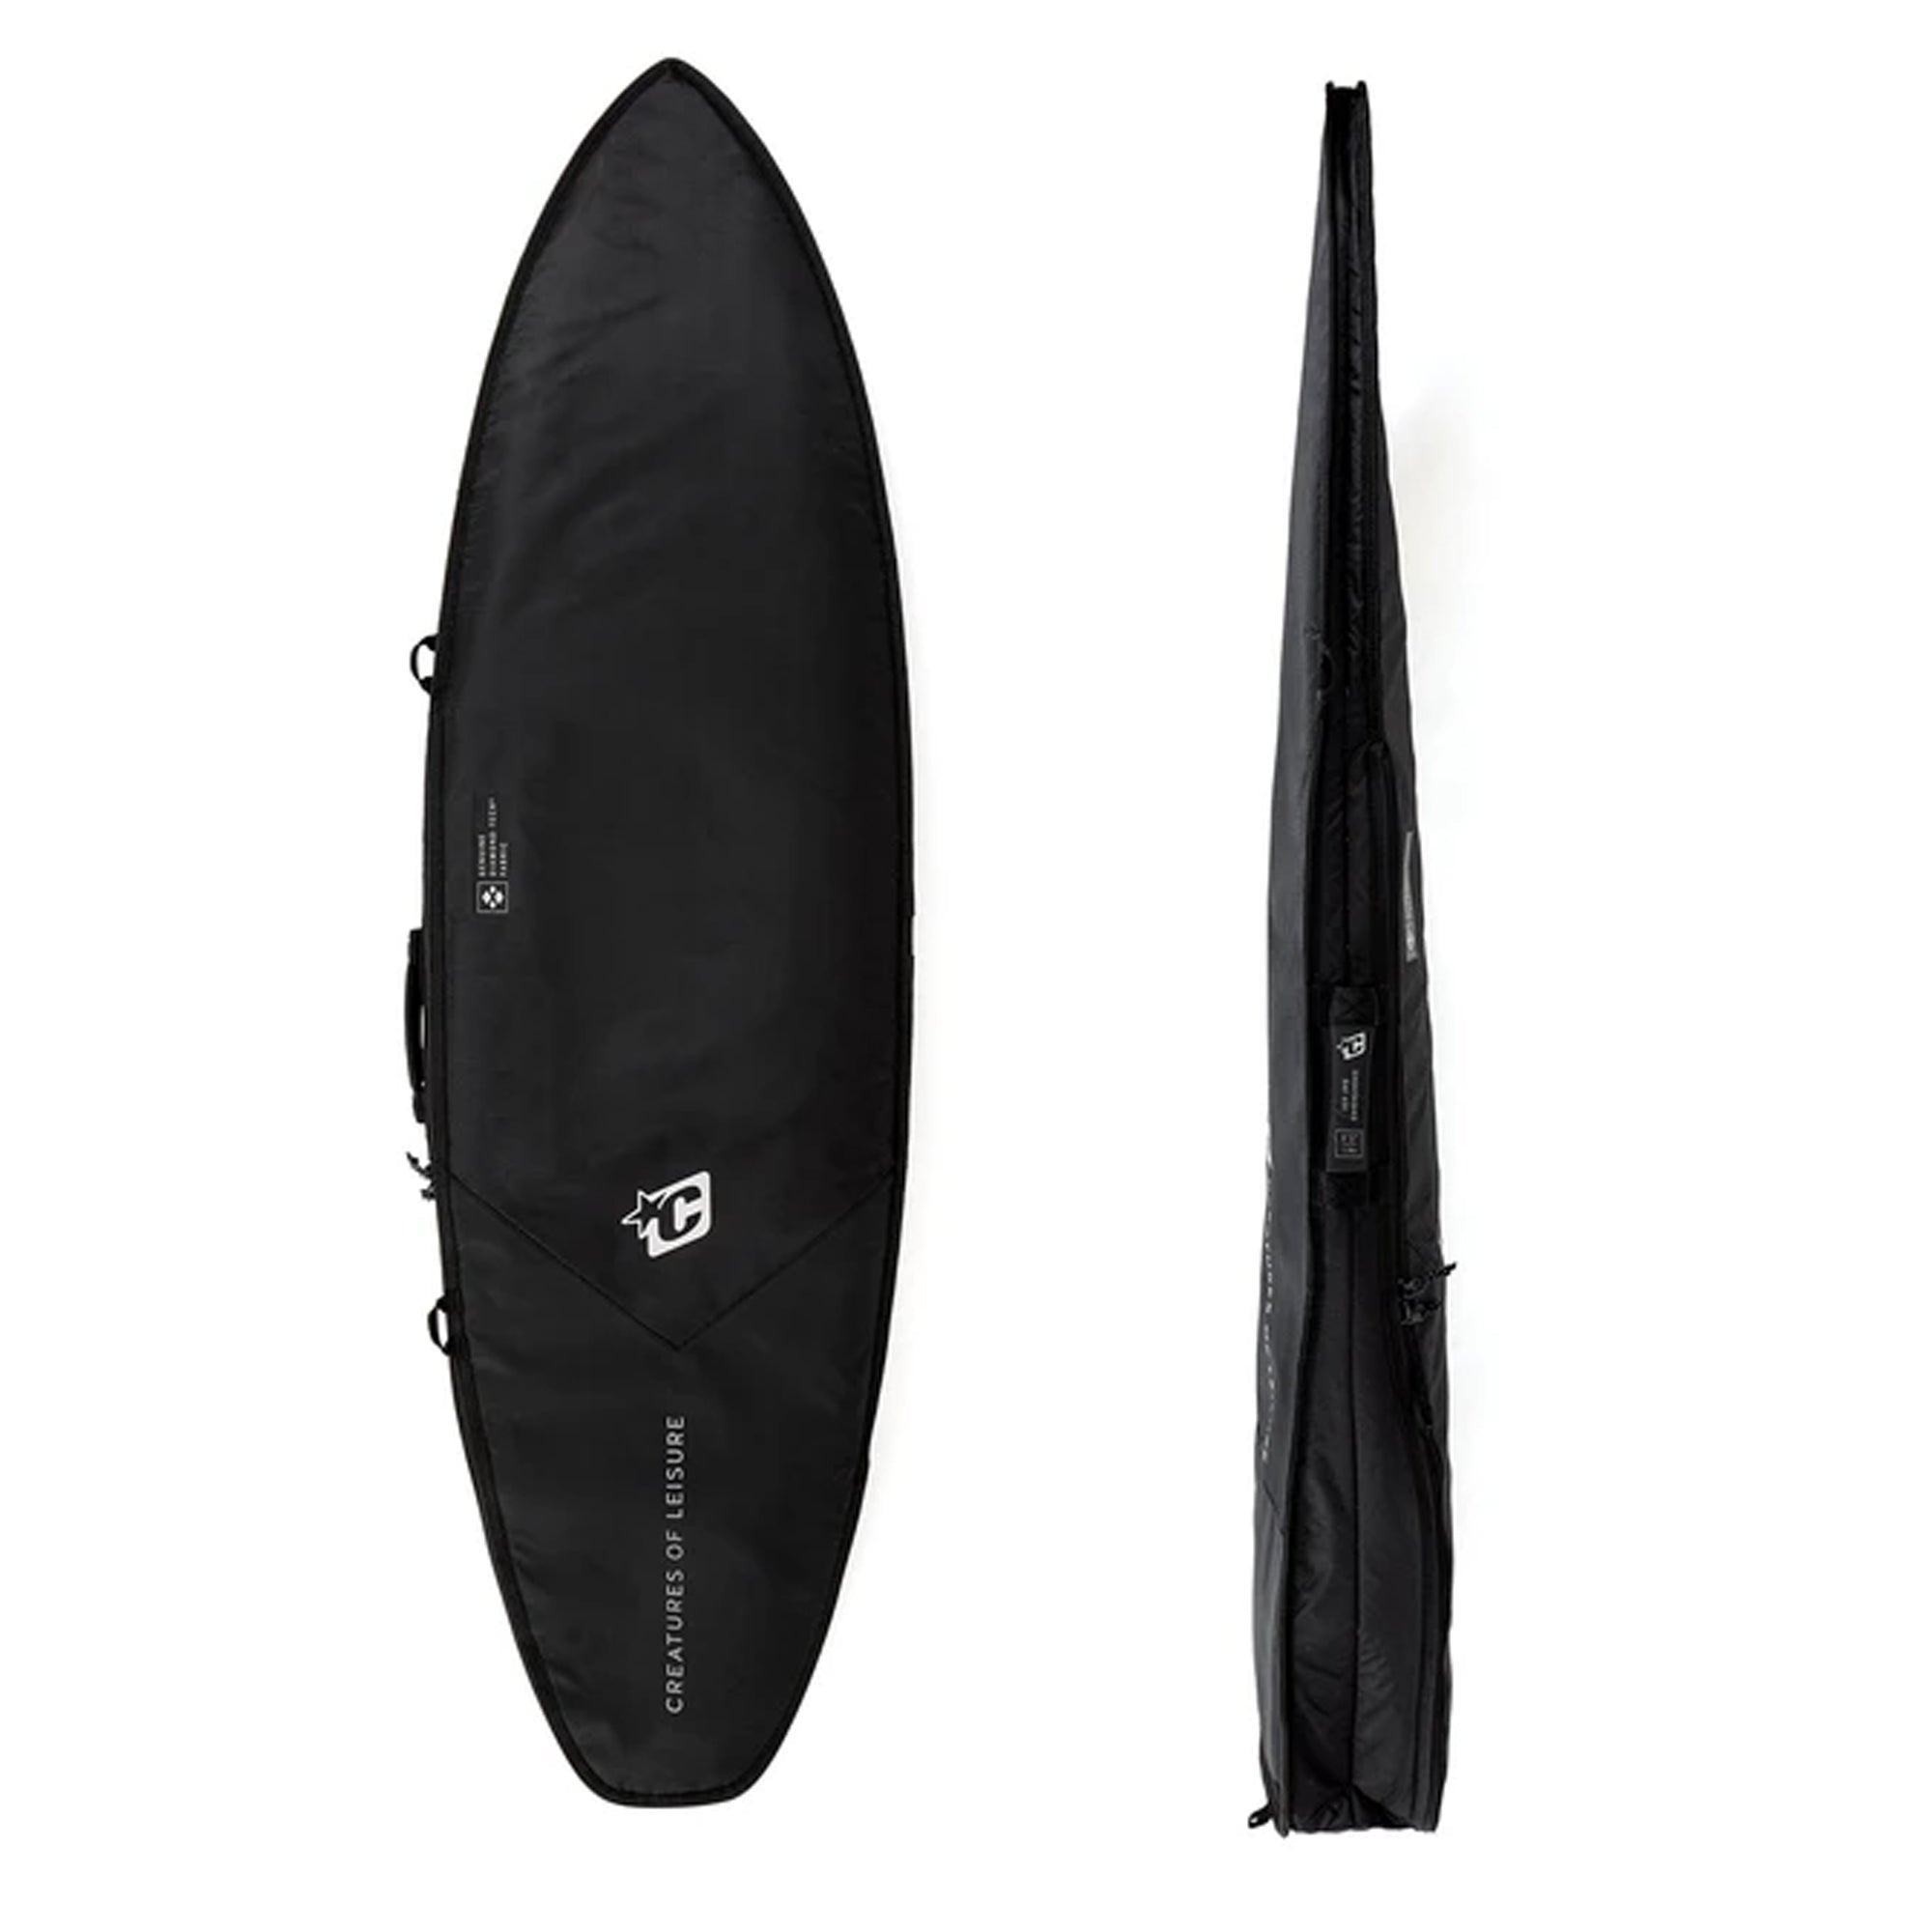 Creatures of Leisure 2021 Shortboard Day Use DT2.0 Surfboard Bag